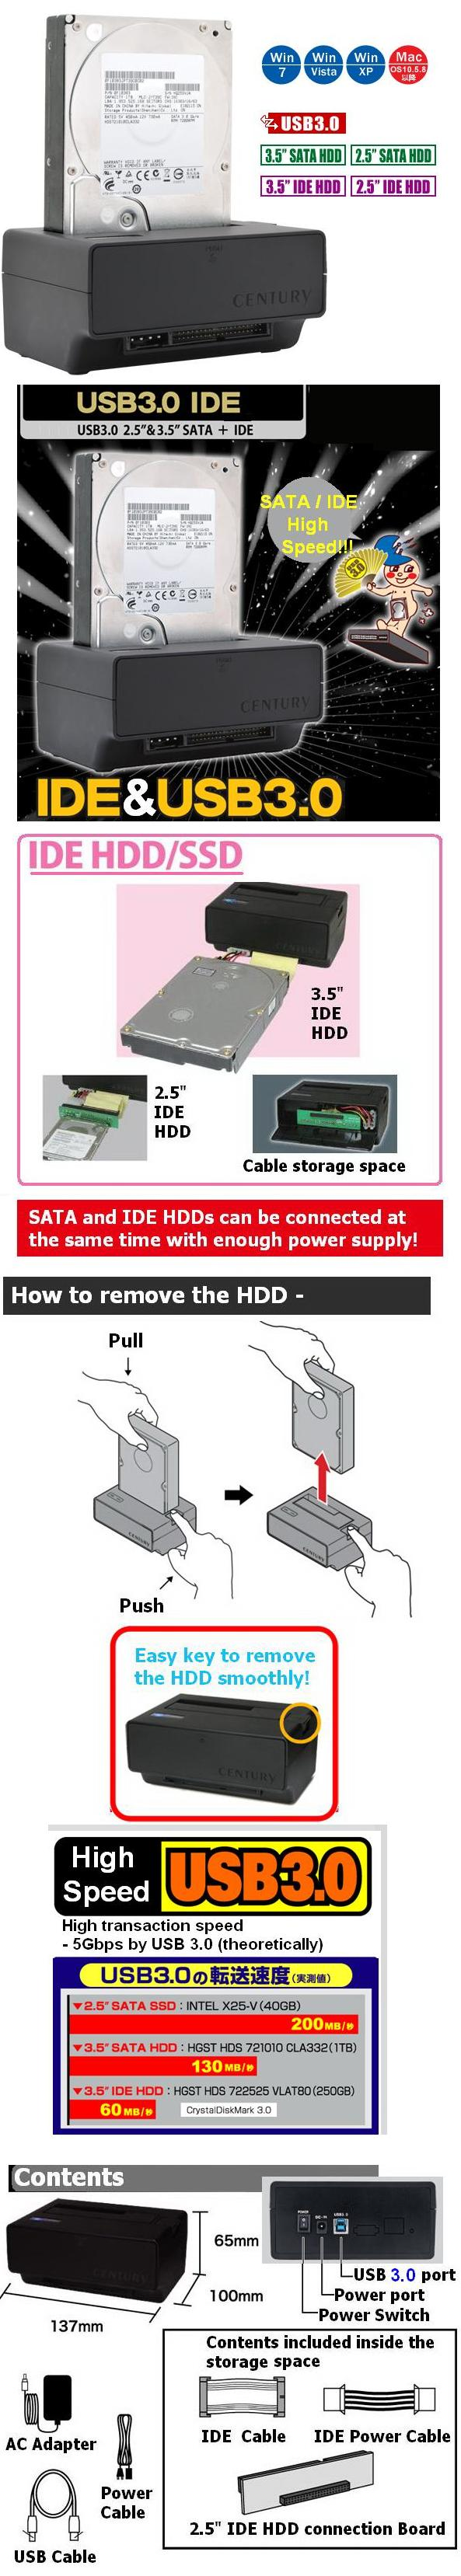 Century Connect Ide To Usb Cable Wiring Diagram High Speed 30 Transaction Is Build In